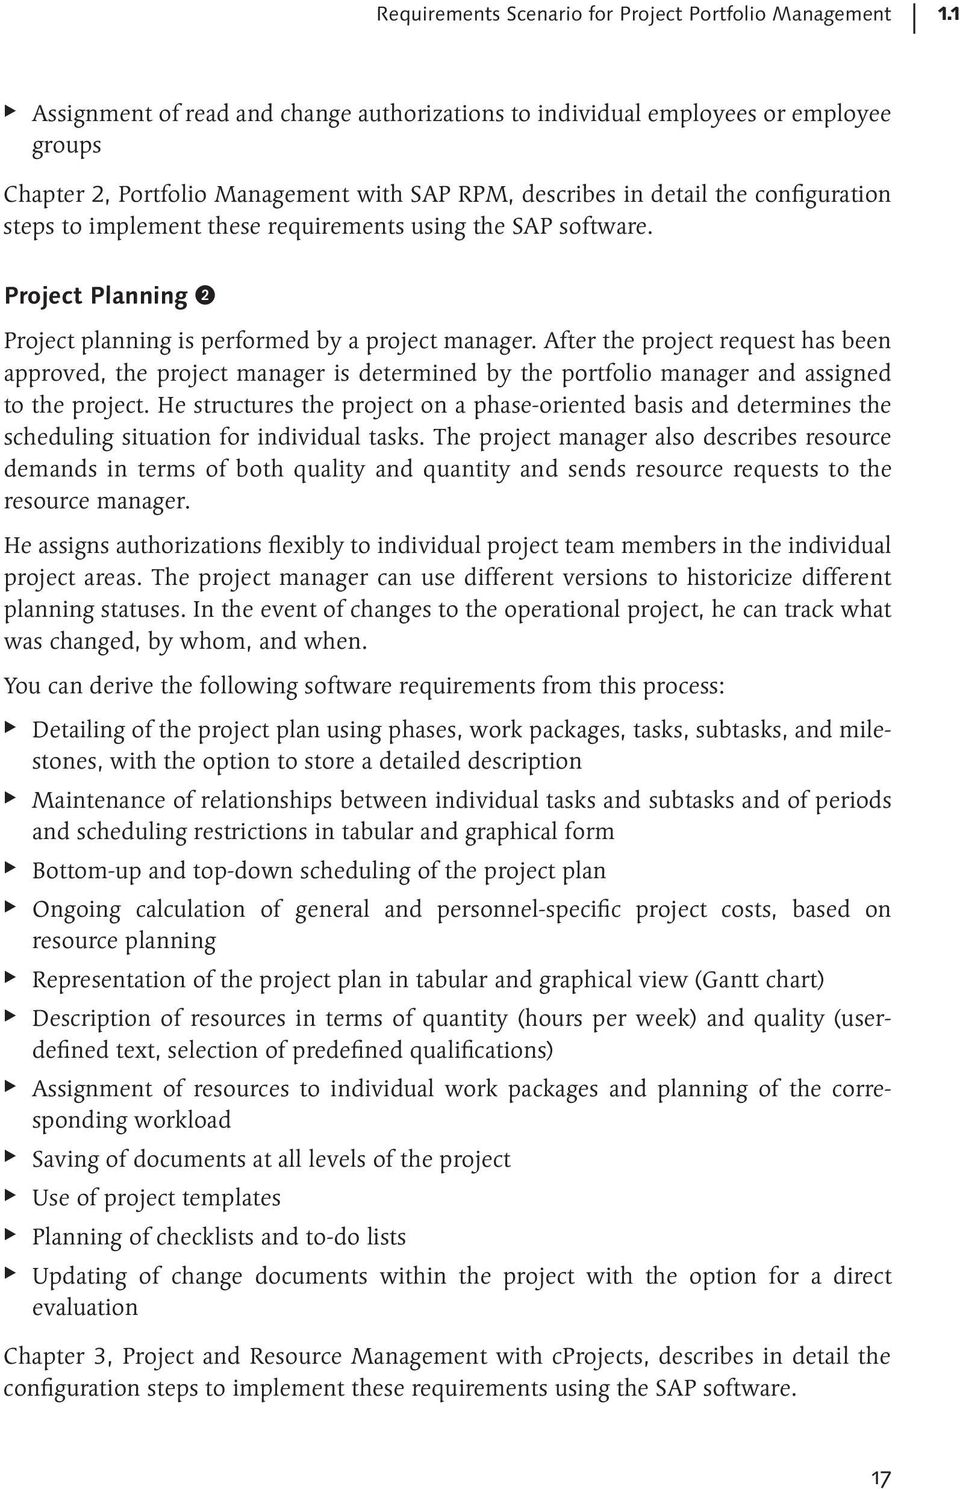 requirements using the SAP software. Project Planning 2 Project planning is performed by a project manager.